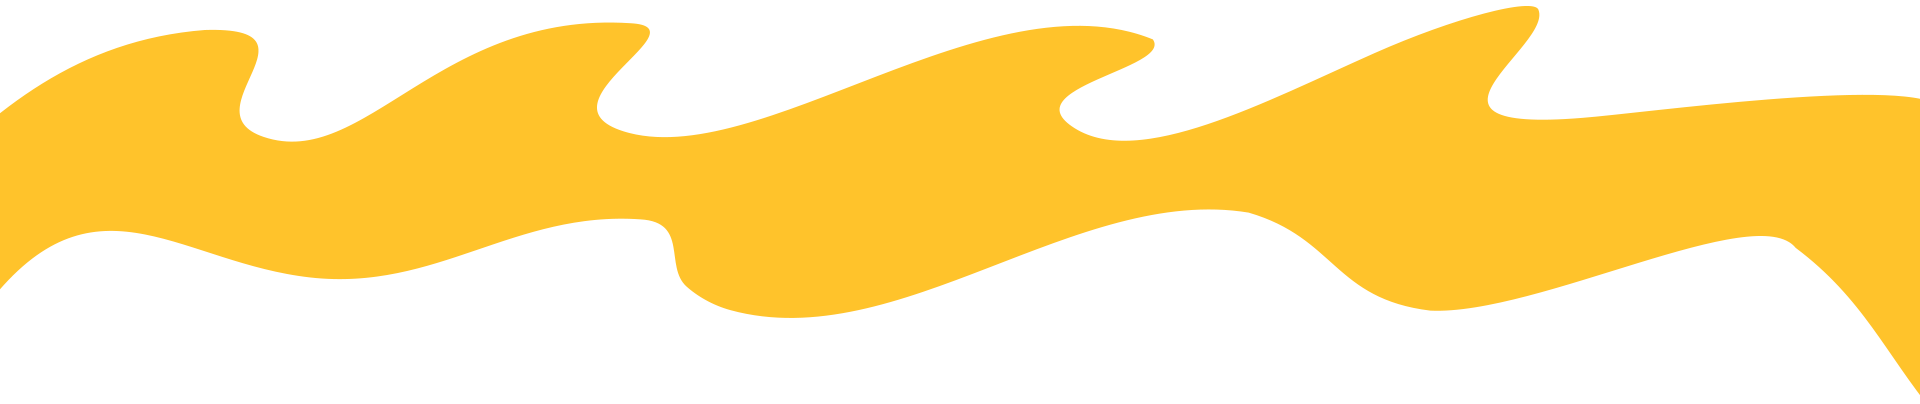 waves-amarelo.png